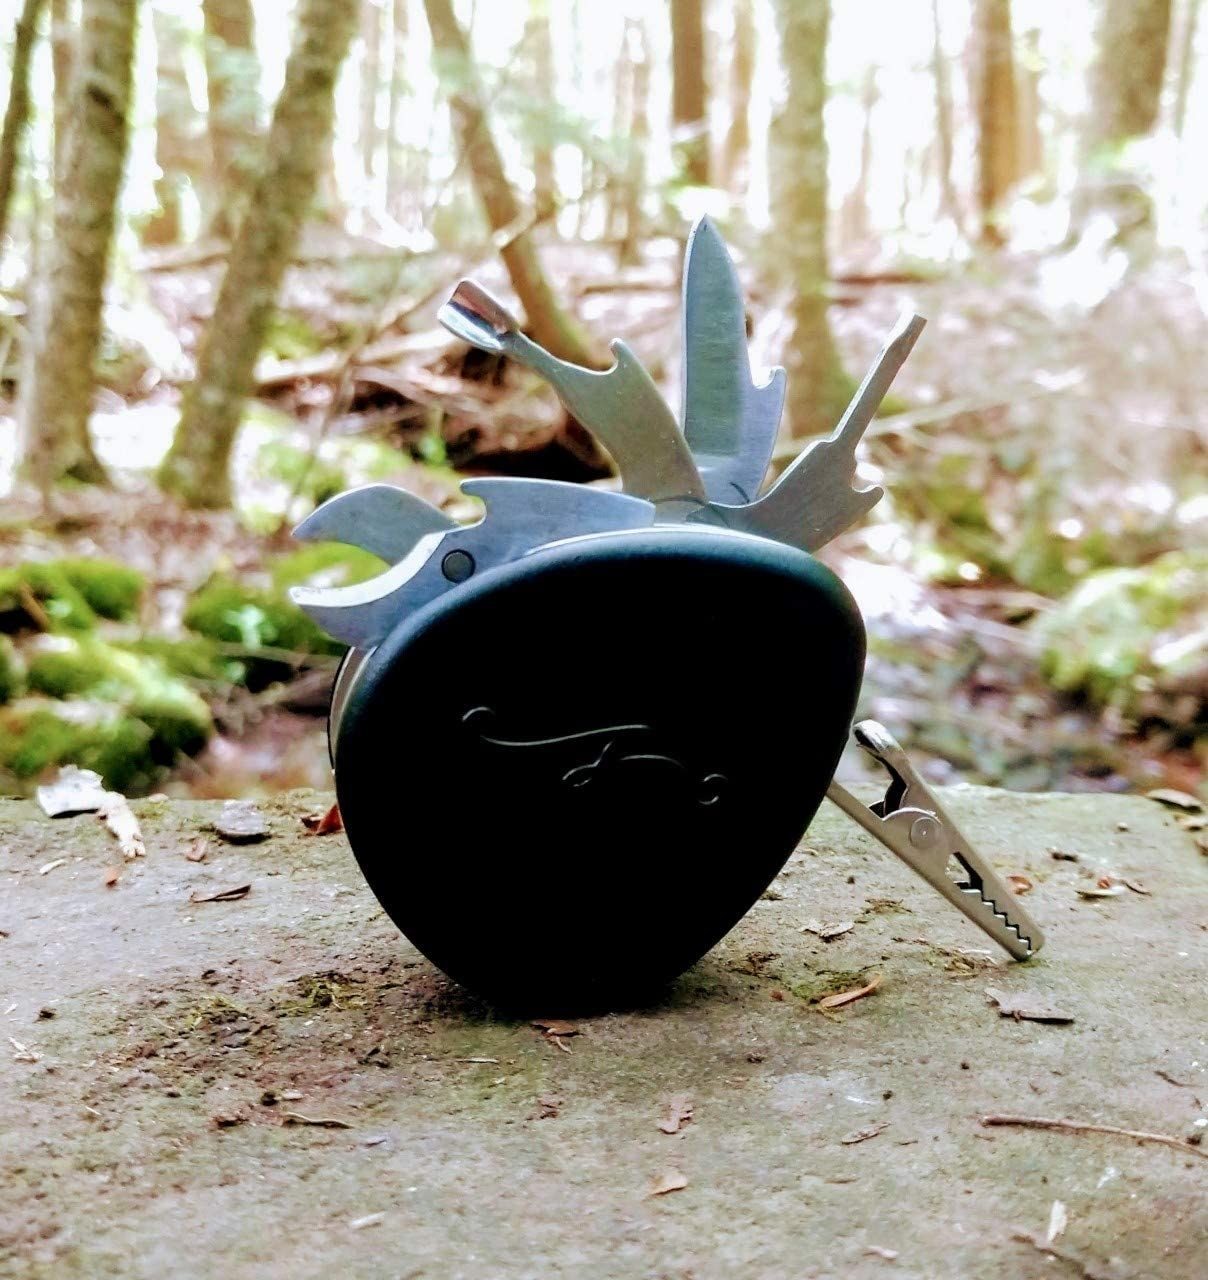 The multitool in a forest